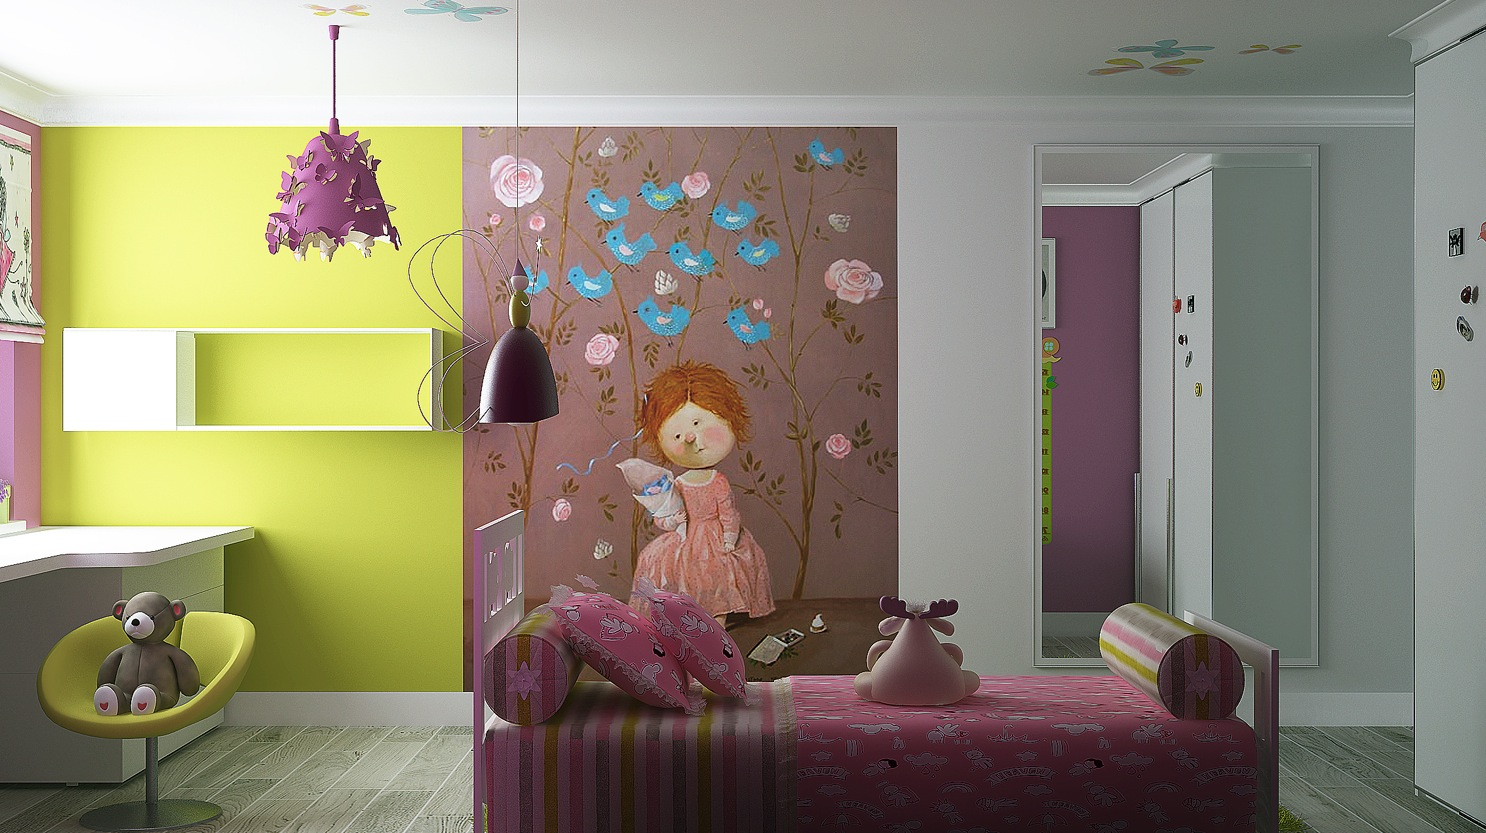 via kate chelyustnikovaa character themed wall mural adds quirkiness to plain paintwork gaining maximum impact